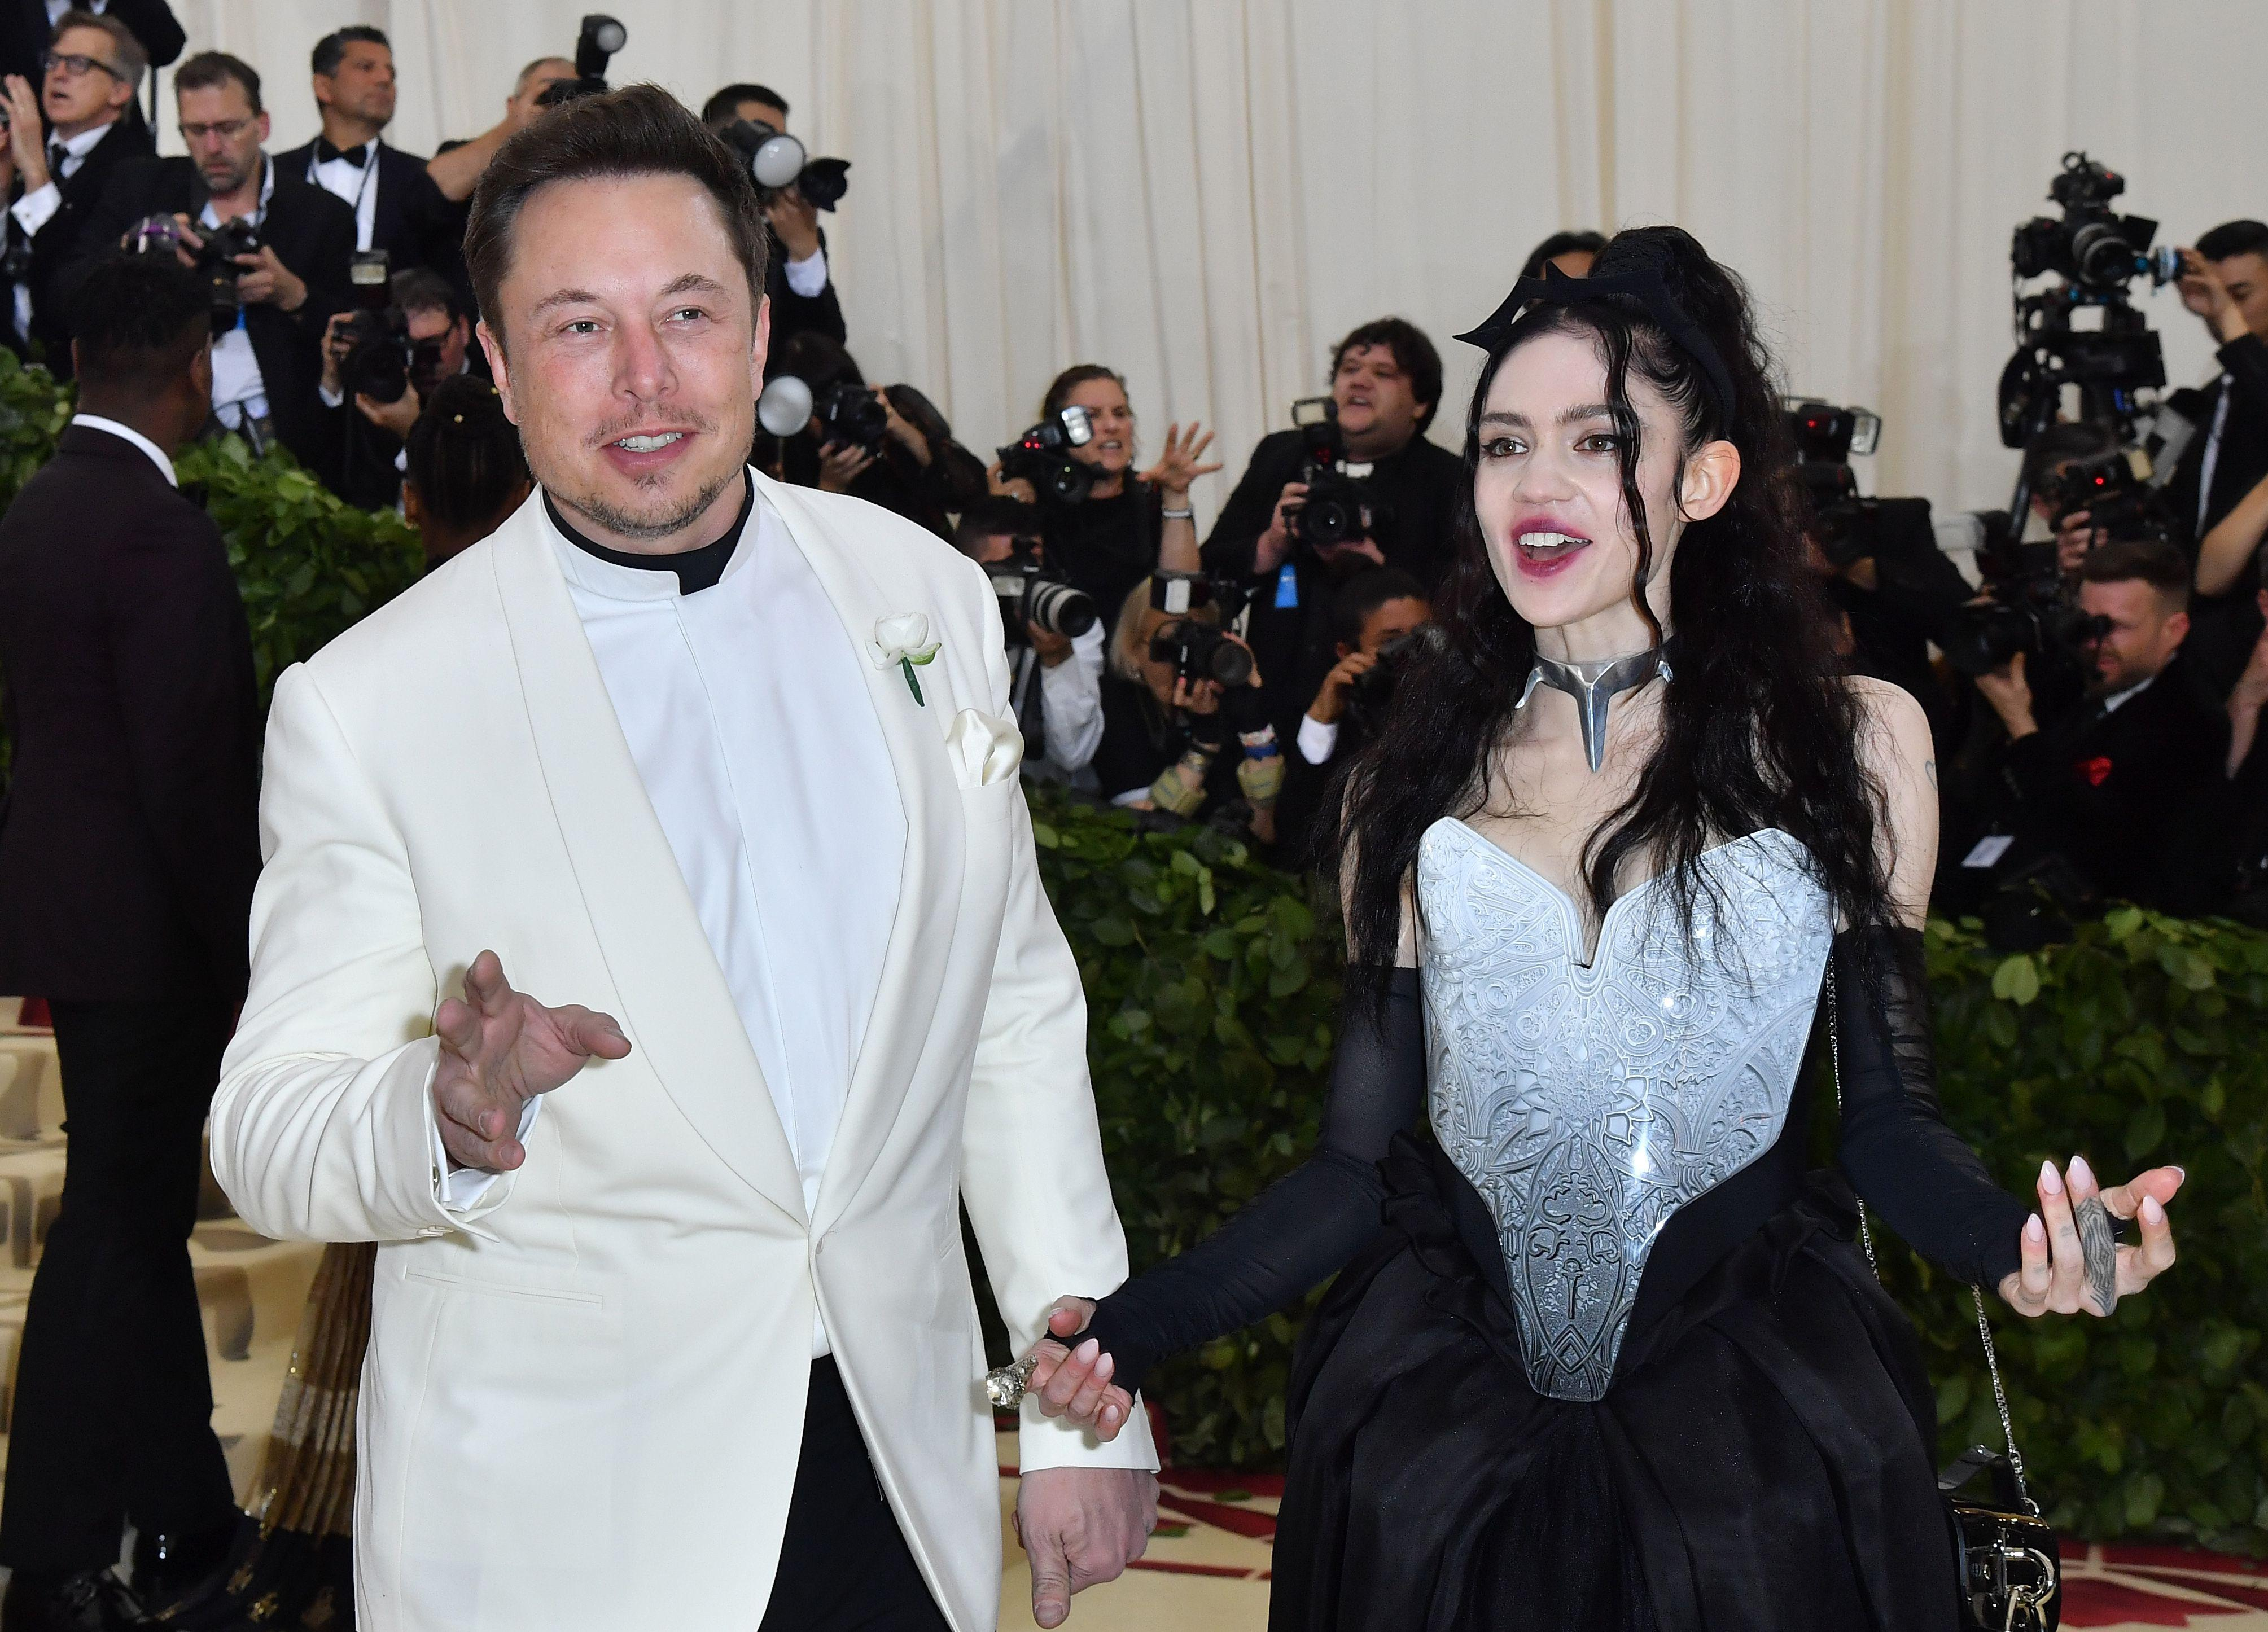 Elon Musk and Grimes arrive for the 2018 Met Gala on May 7, 2018, at the Metropolitan Museum of Art in New York. - The Gala raises money for the Metropolitan Museum of Arts Costume Institute. The Gala's 2018 theme is Heavenly Bodies: Fashion and the Catholic Imagination. (Photo by ANGELA WEISS / AFP)        (Photo credit should read ANGELA WEISS/AFP/Getty Images)